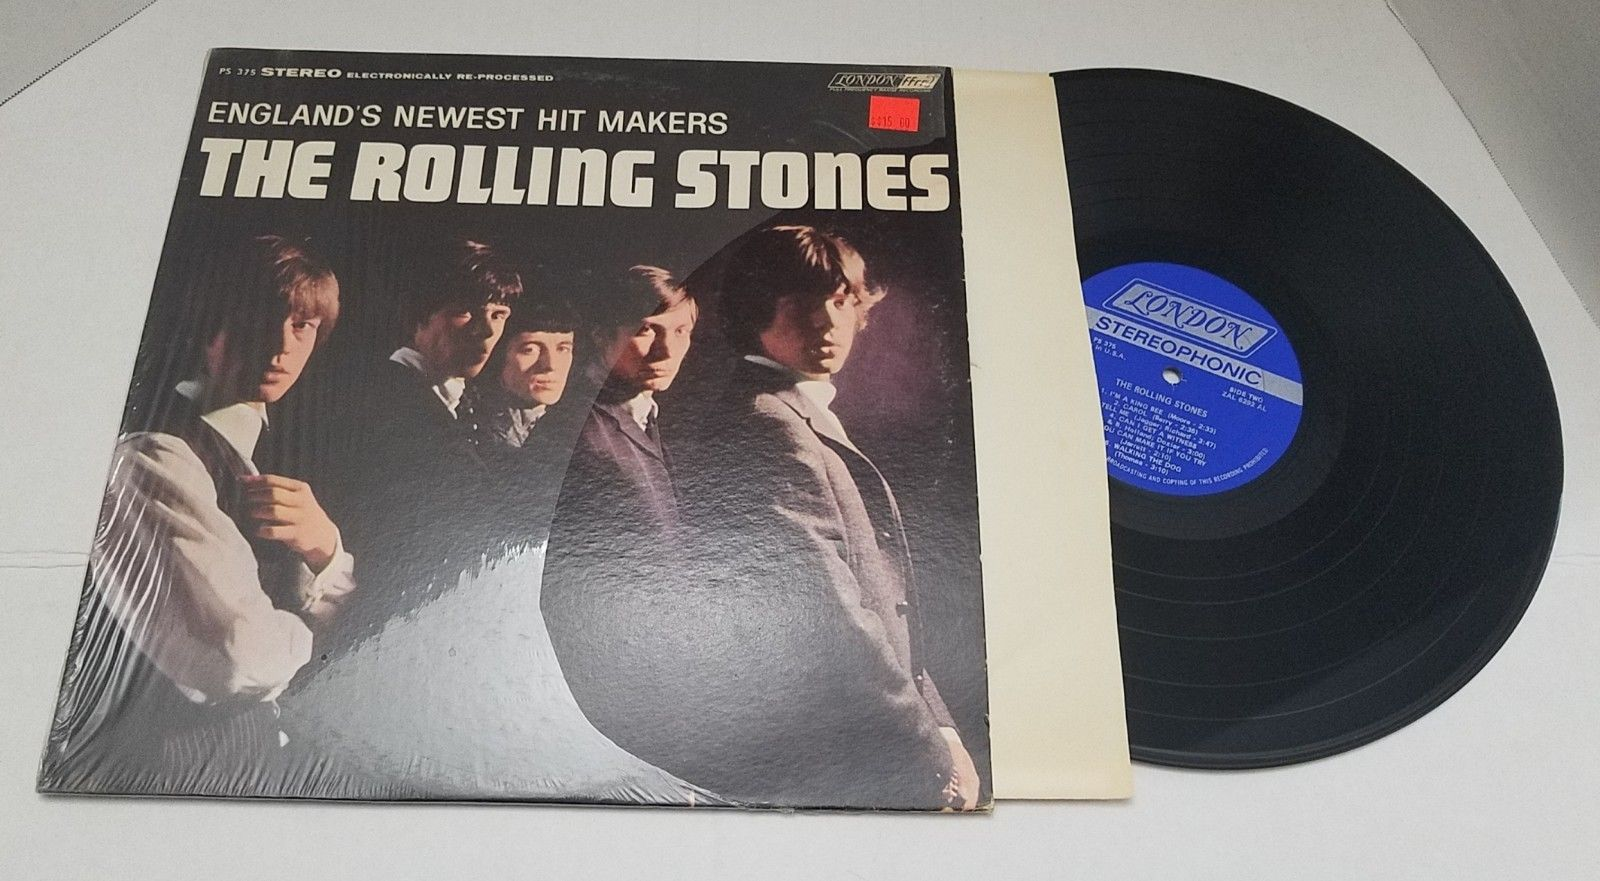 The Rolling Stones - England's Newest Hit Makers Vinyl LP London PS 375 Shrink